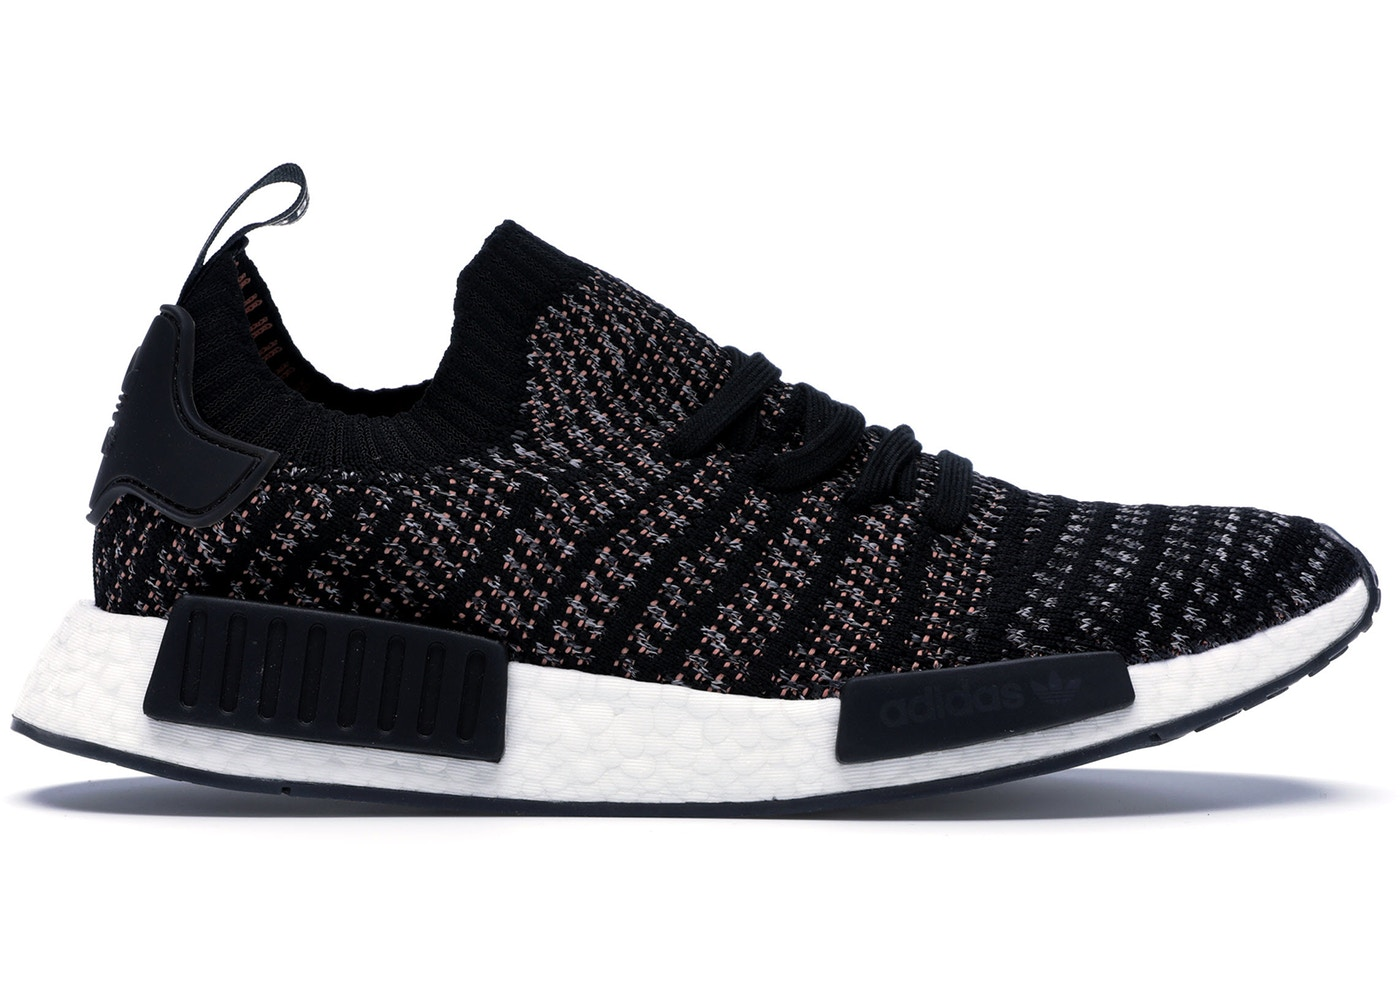 be7b181b3 adidas NMD R1 STLT Stealth Pack Core Black - B37636